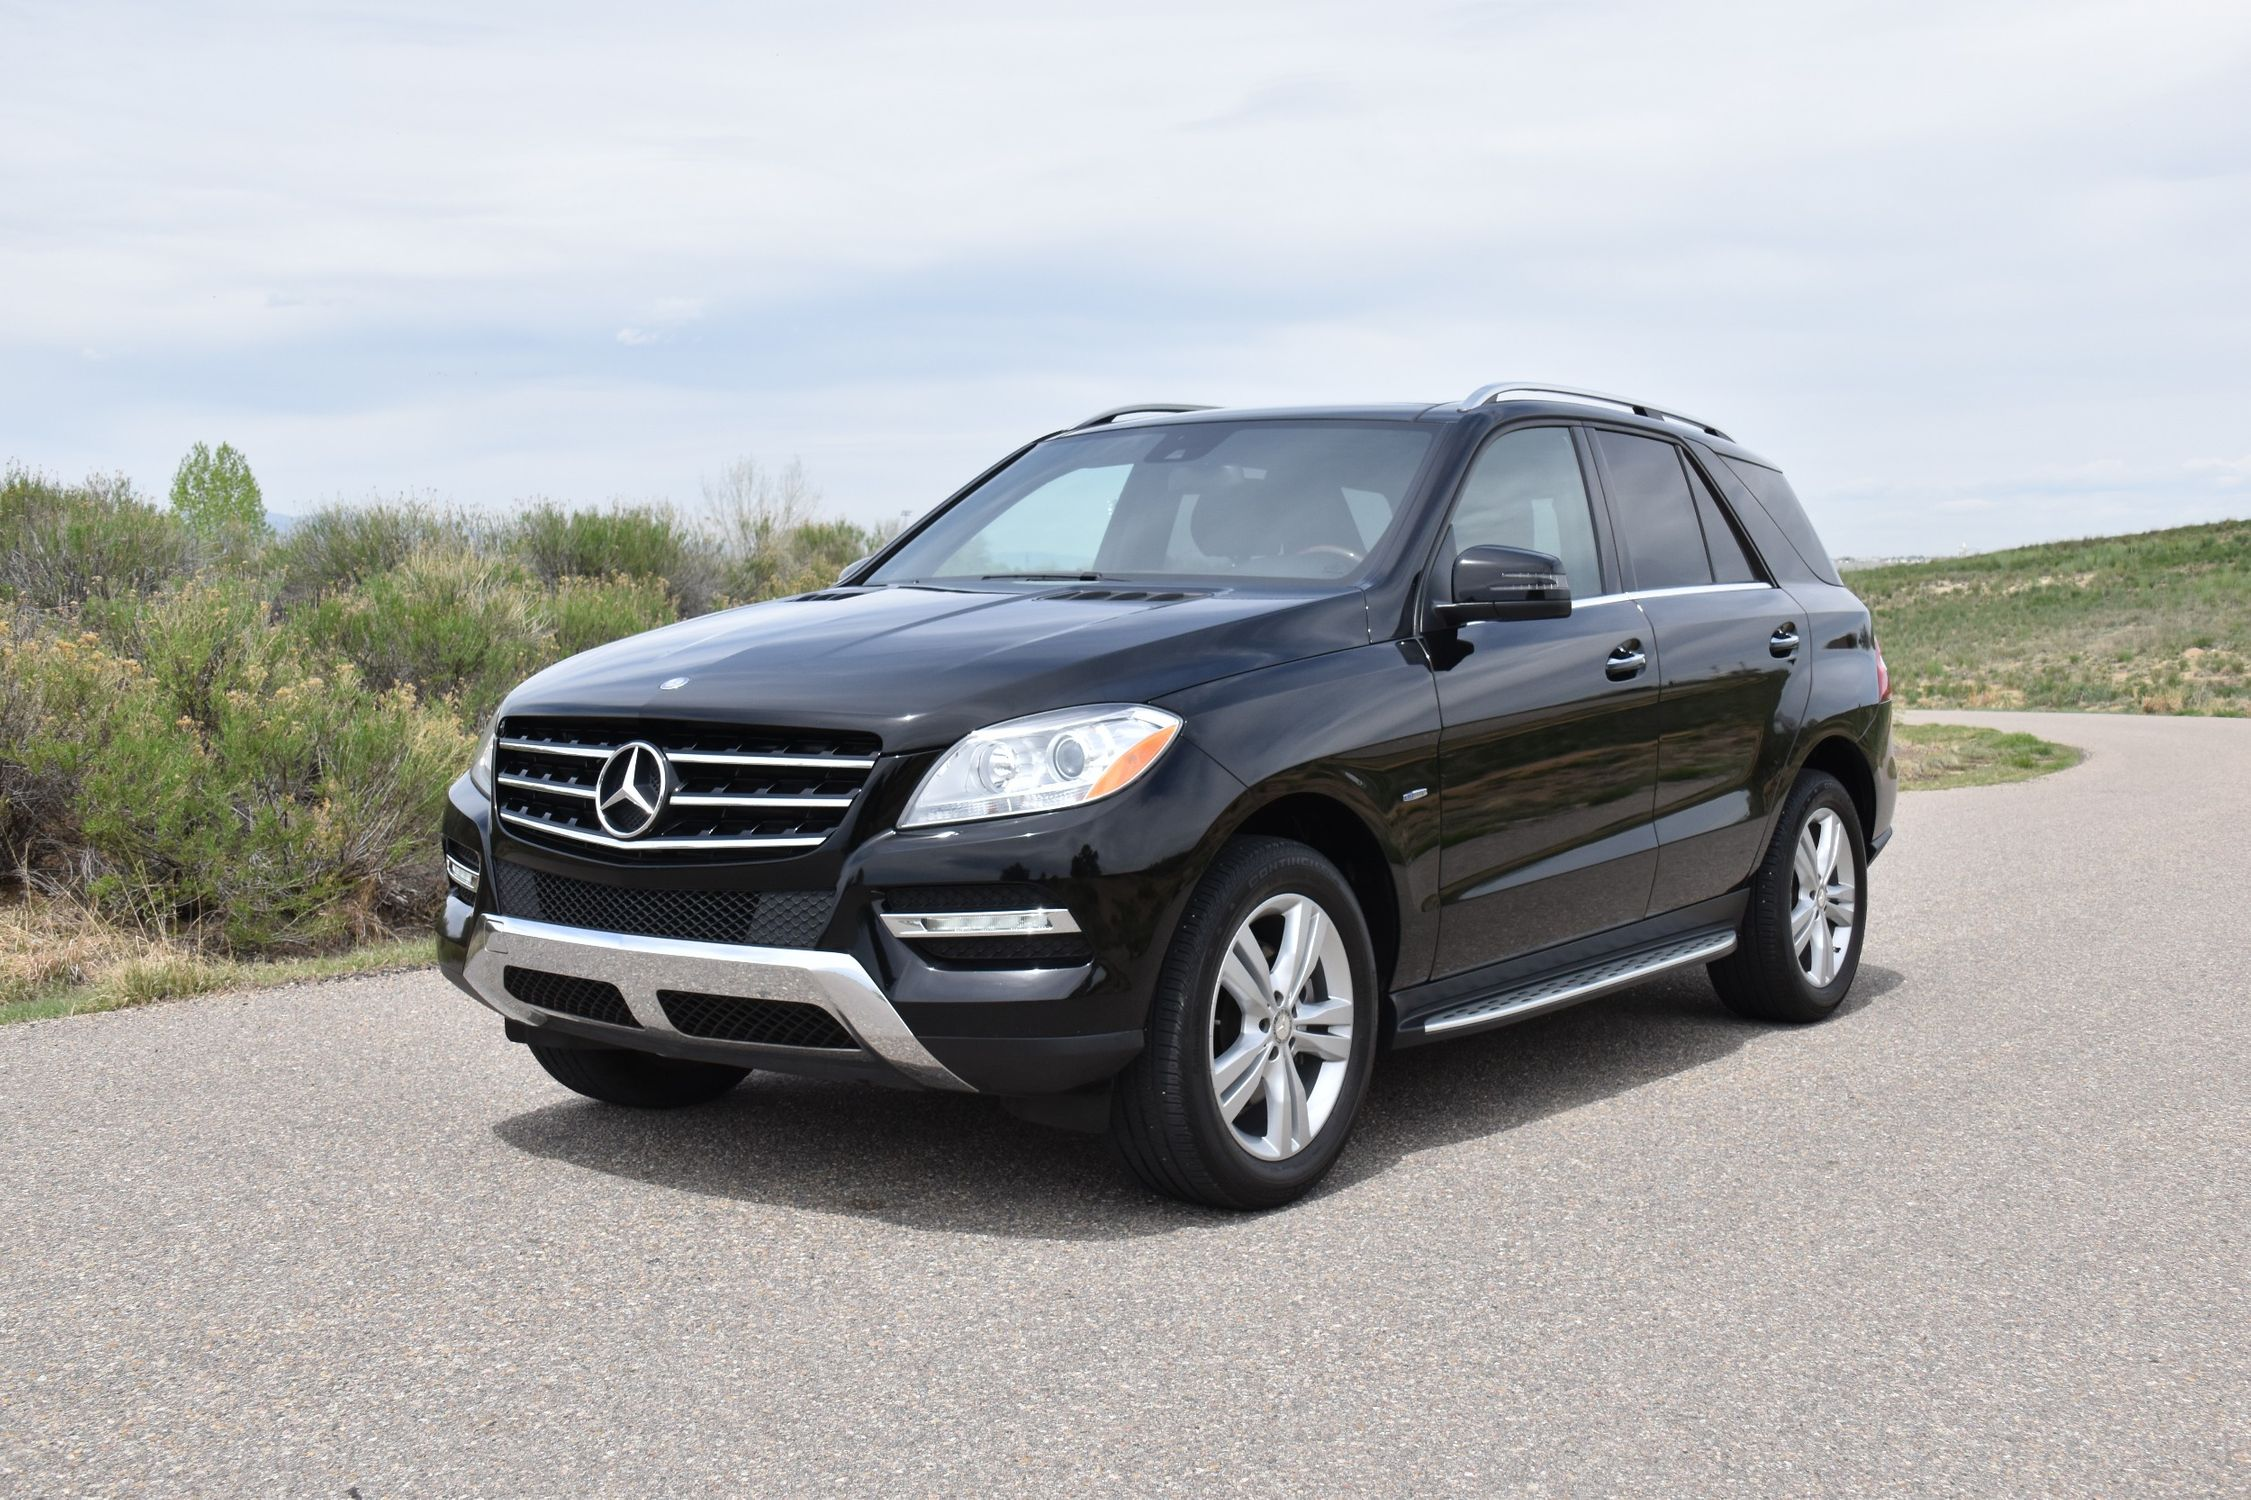 7E%2F8I%2FXA%2FLFAMISSNUA4CVT Cool Review About 2012 Mercedes Ml350 Bluetec